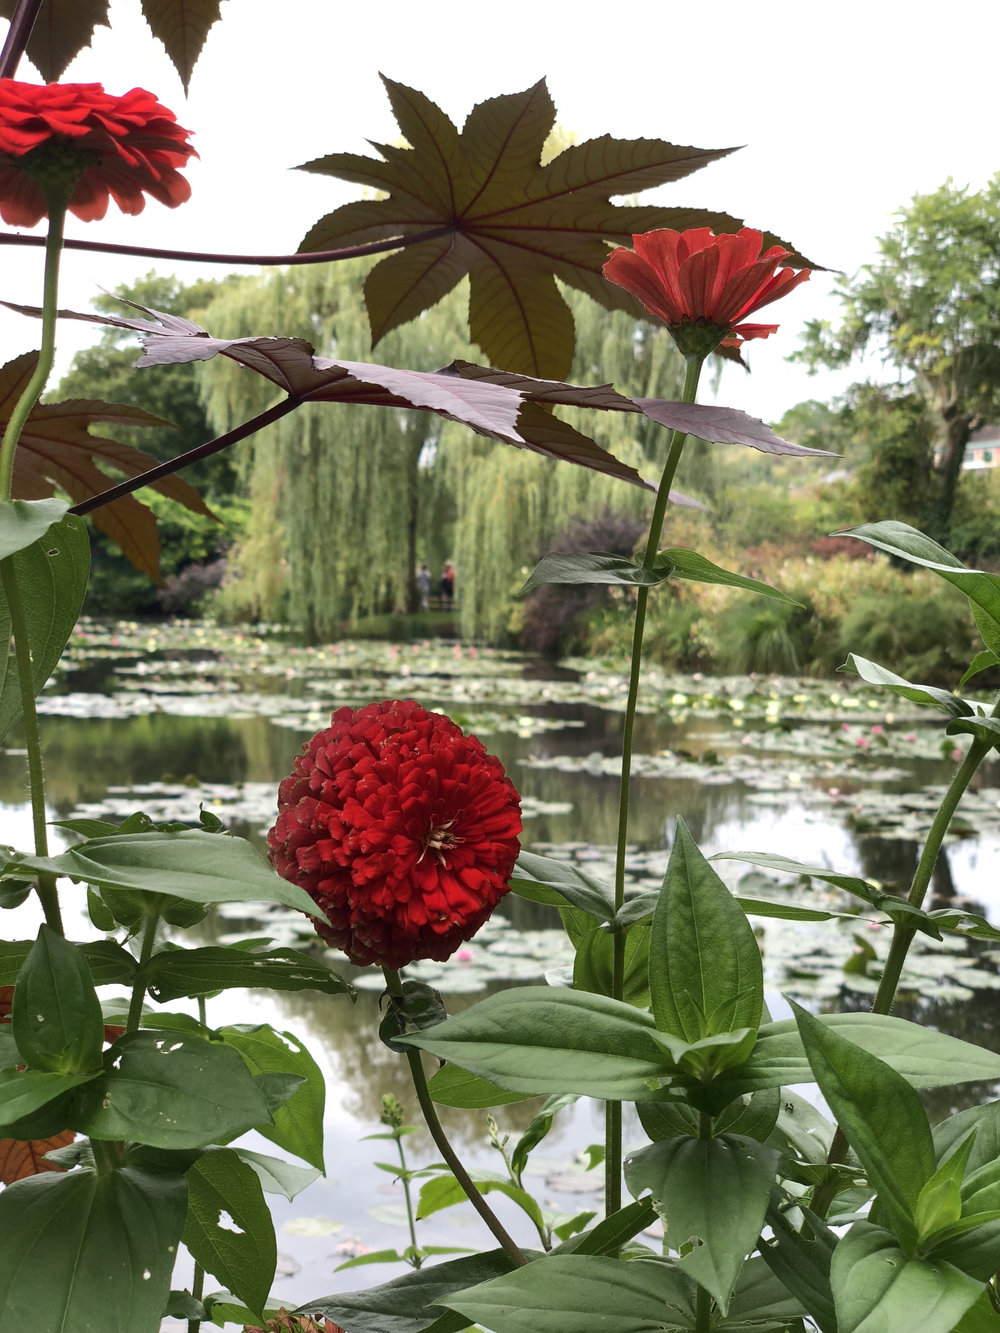 teri_Paris_laura'sbd_monet_giverny_l'orangerie_spiritedtable_photo37.jpg